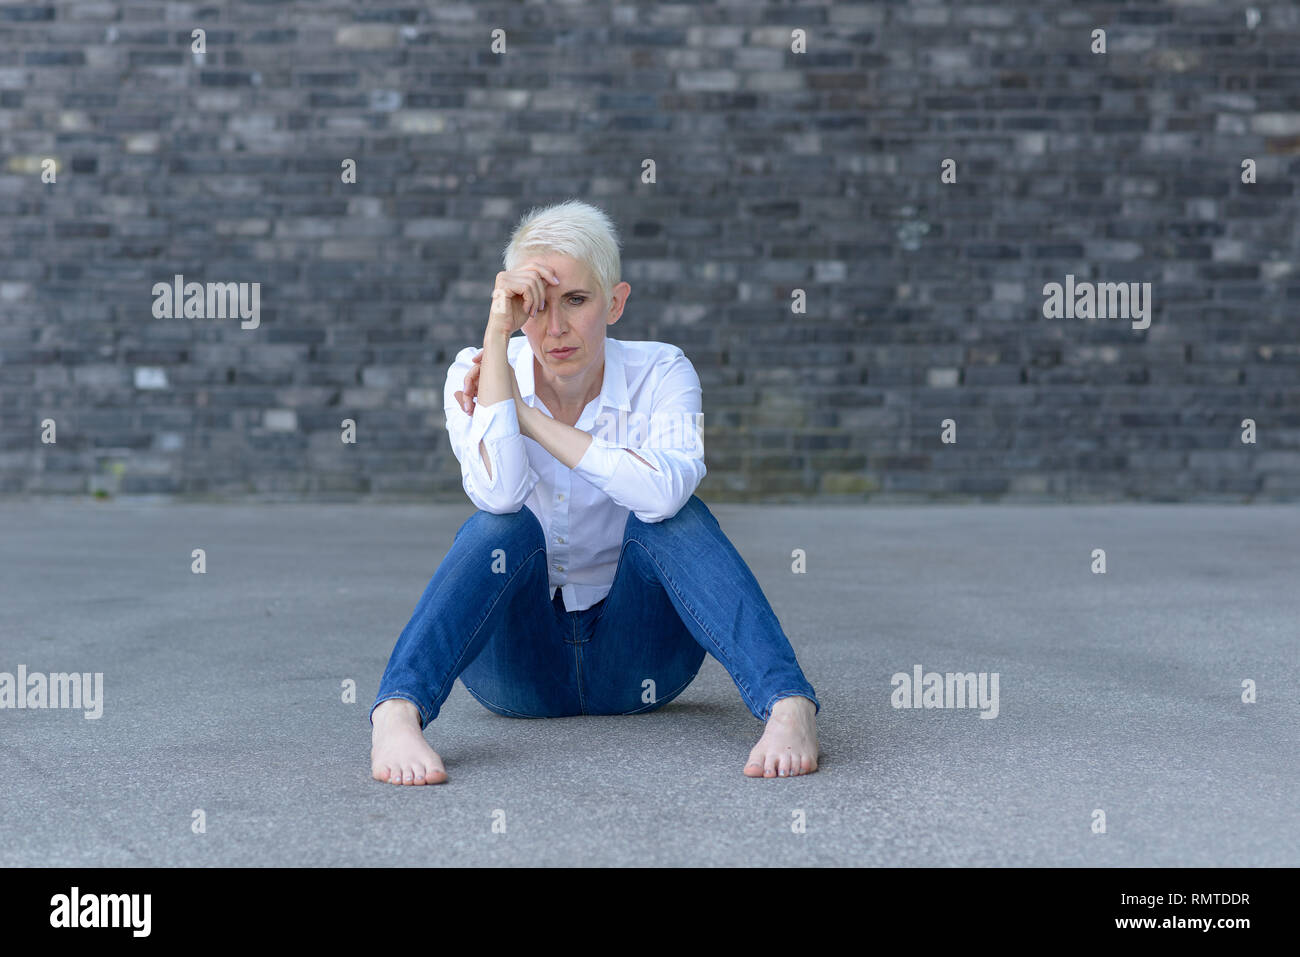 Depressed woman sitting on the ground before a black wall - Stock Image